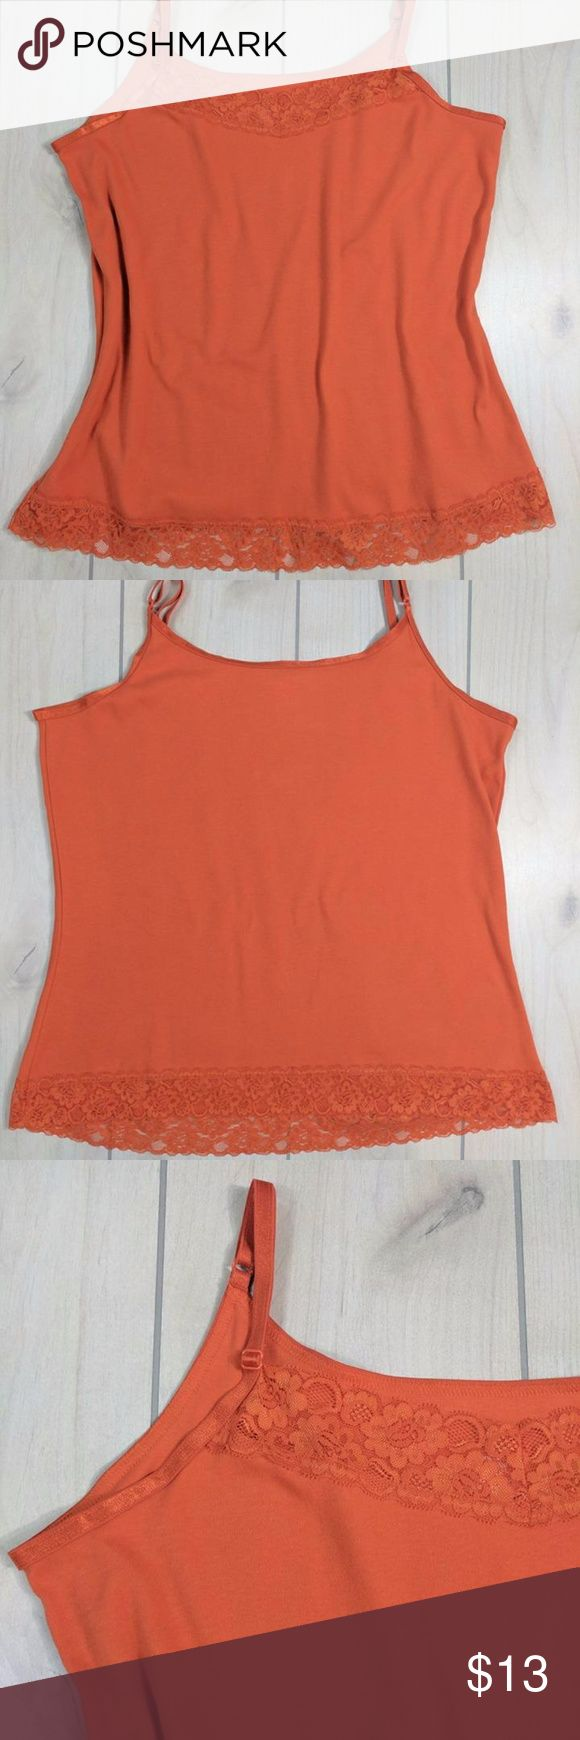 """CJ Banks Orange Cami Adjustable Straps Stretch 1X Adorable orange lace trim cami. This top is orange. Some of the pics look a little washed out but the top is a beautiful orange.  98% cotton. 2% spandex stretch. Adjustable straps.  Chest around at underarms measures 45"""" Length from top of shoulder with strap at longest point 30"""". Waist 44"""" around. Bottom hem 48"""" around. Excellent condition. Smoke free. BLT3 CJ Banks Tops Camisoles"""